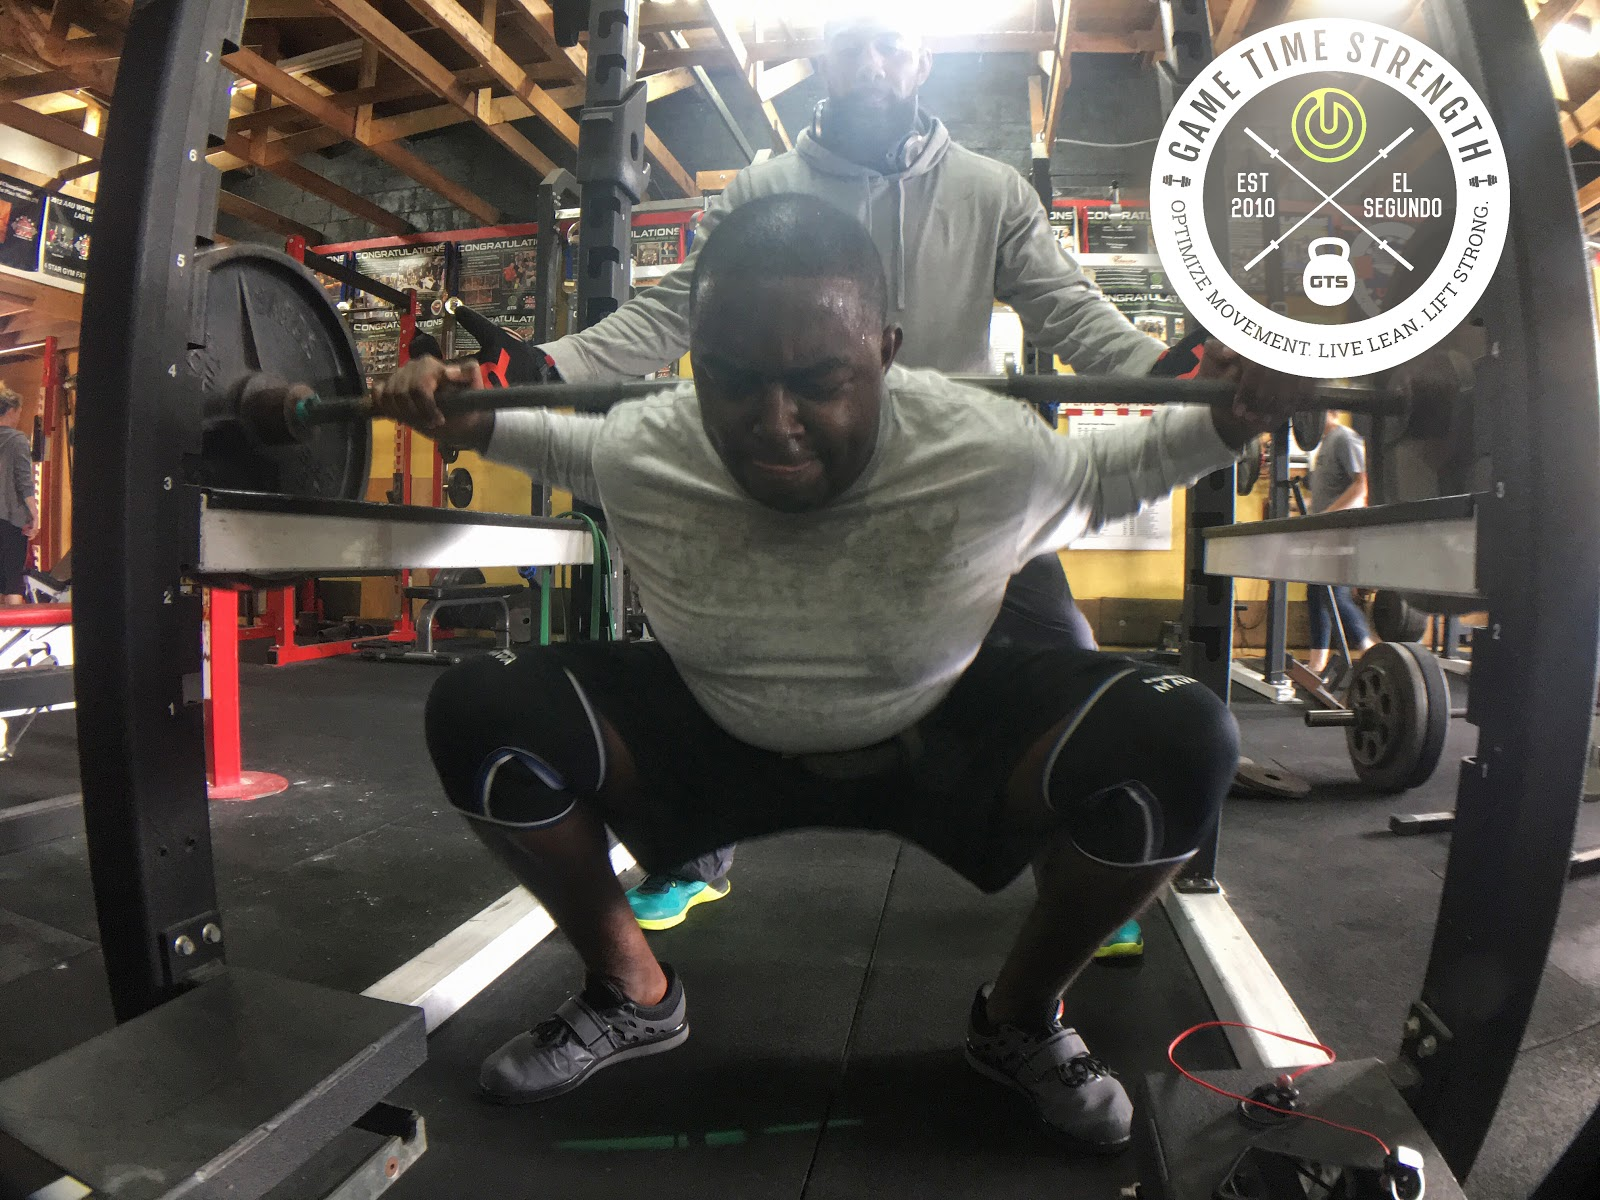 TC - GTS Game Time Strength - Barbell Training Strength Coach Personal Trainer Lean Muscle Los Angeles El Segundo.JPG